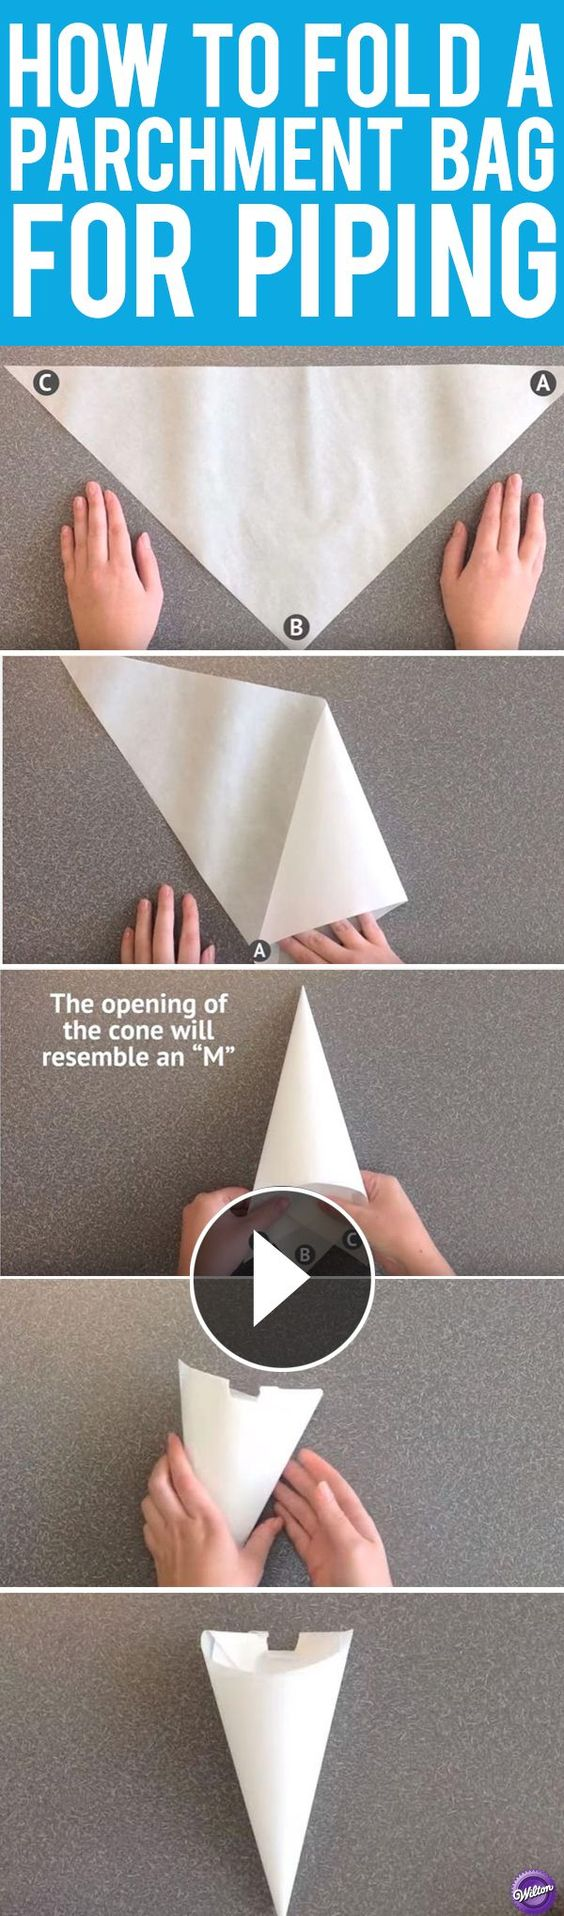 How To Make Cake Decorating Bags Out Of Wax Paper : Learn how to make a piping bag out of parchment paper ...